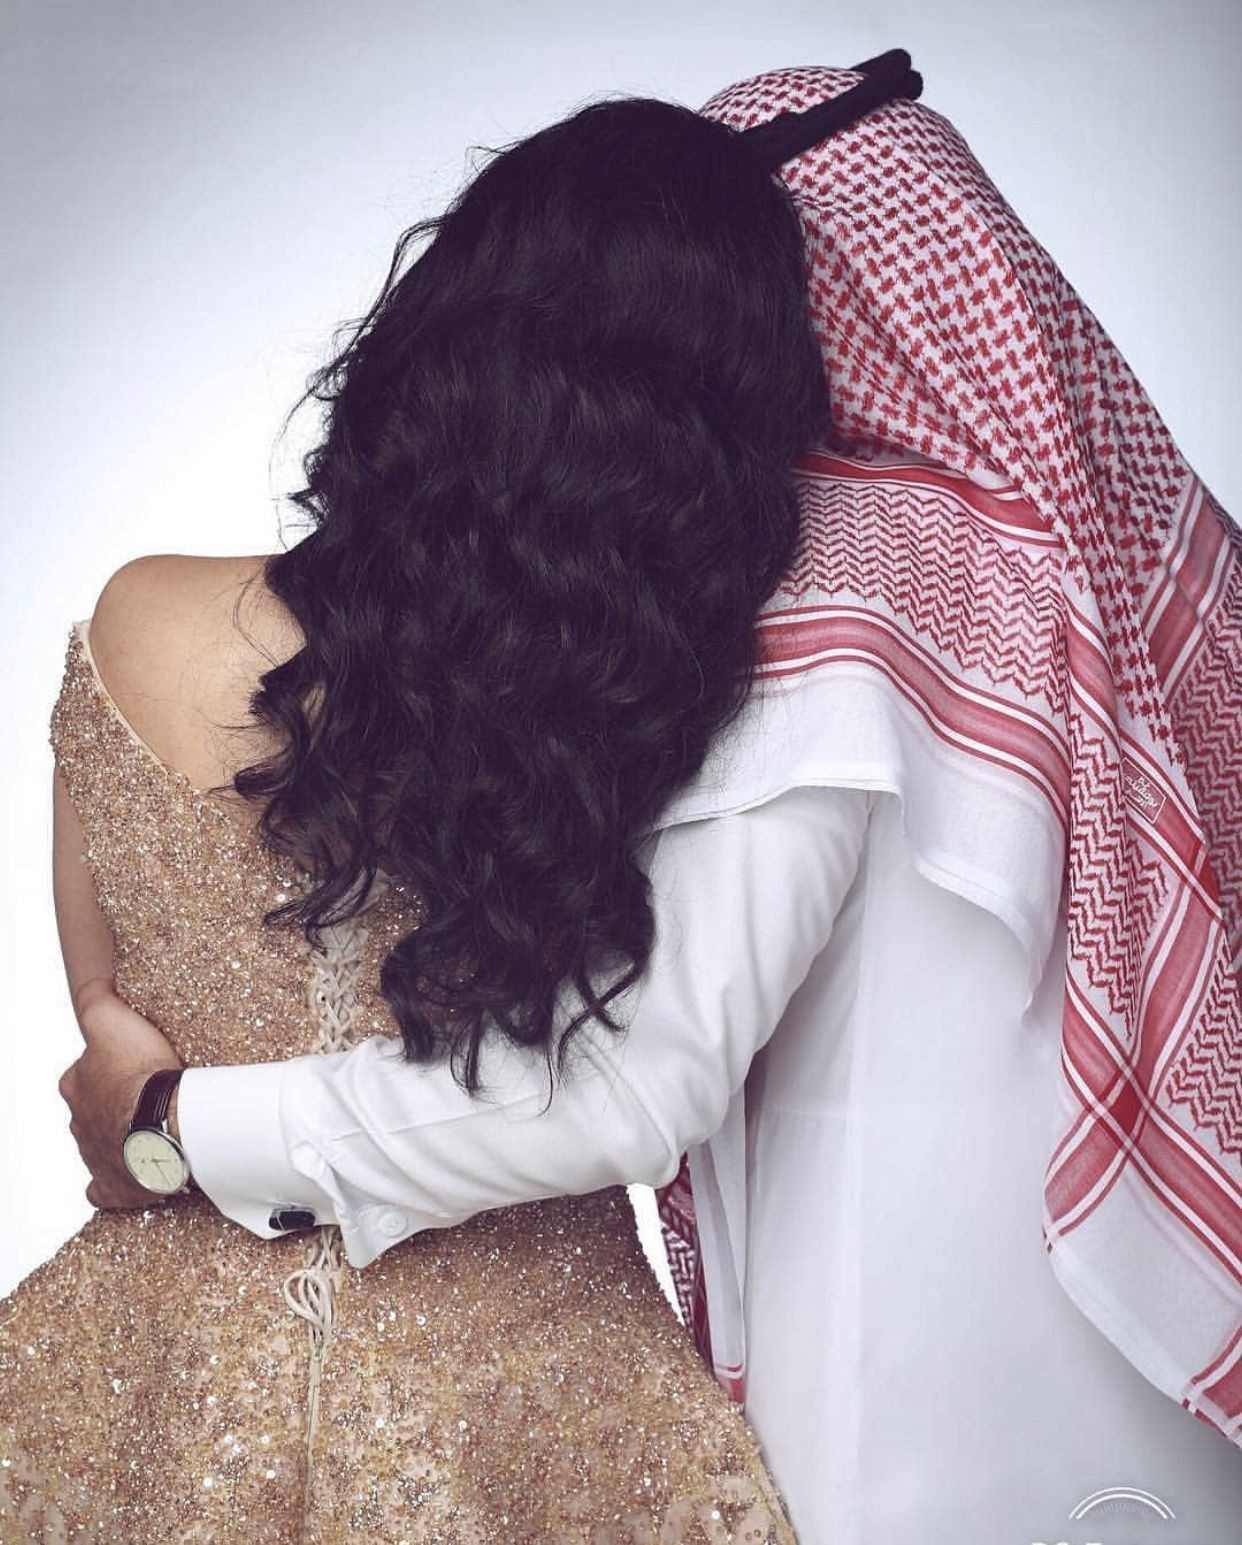 Pin By Lidasatad111 On Couple Pictures Muslimah Wedding Cute Muslim Couples Muslim Couples